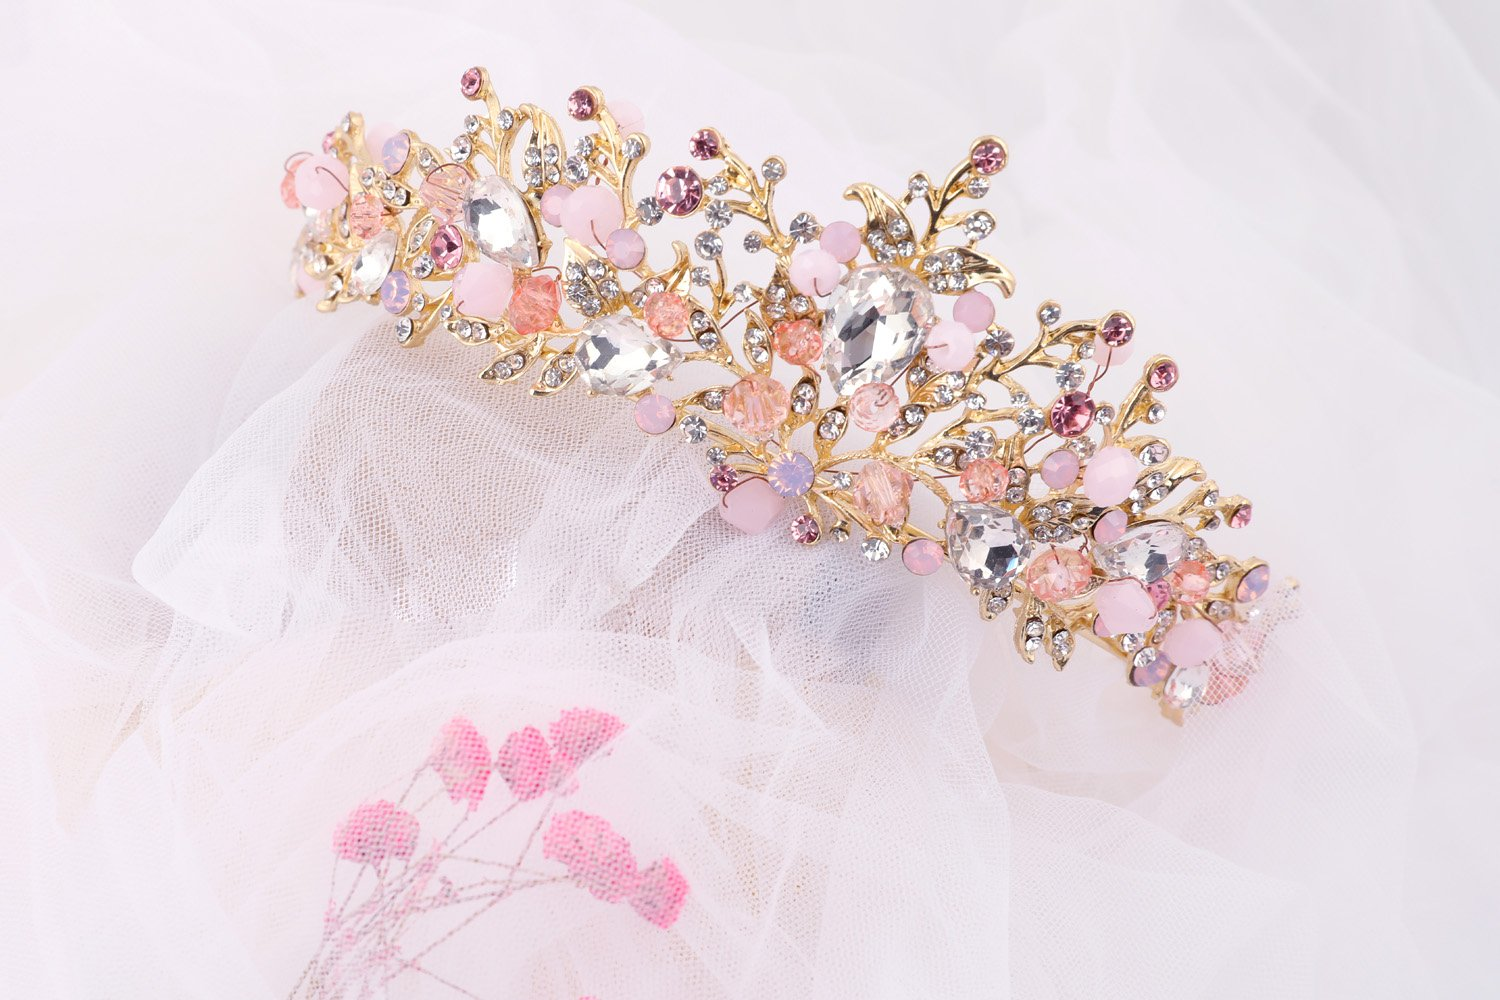 7171RuWjBWL._SL1500_ Gold Princess Crown Tiara with Matching Earring Set | Sparkly Coral Reef Shaped Design + 2 FREE Hair Pins (Pink CZ Crystals)